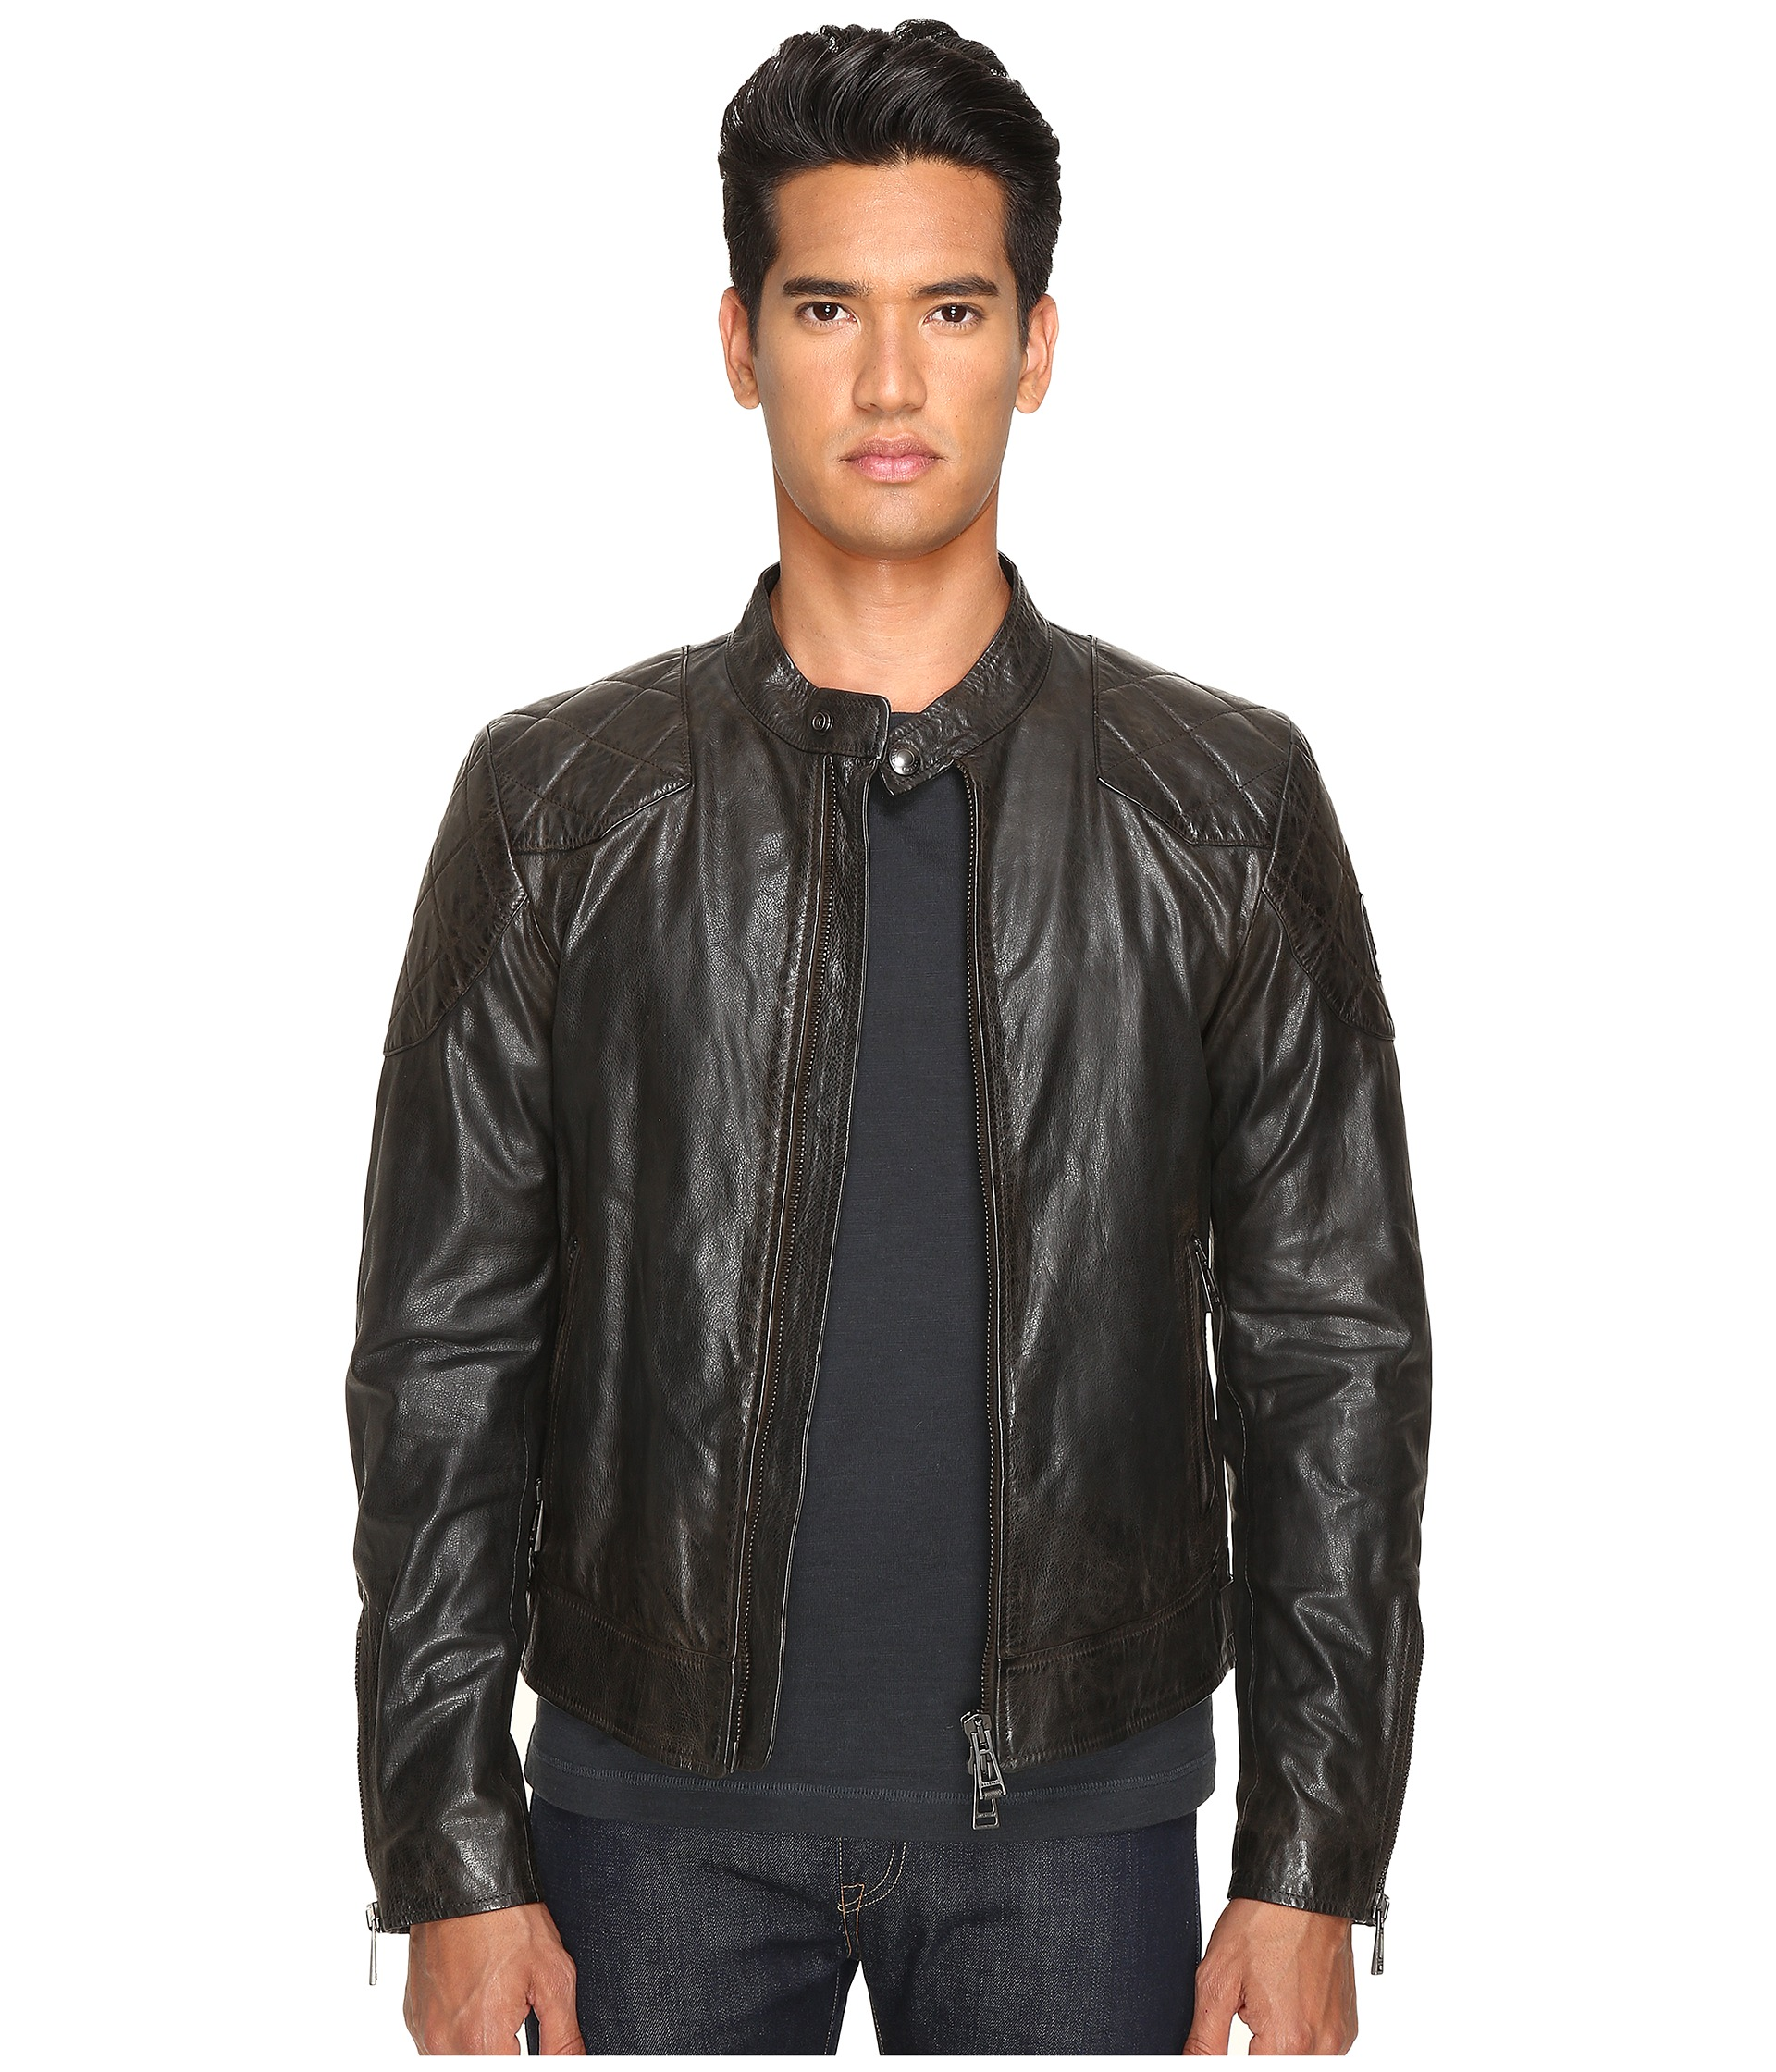 Belstaff leather jackets